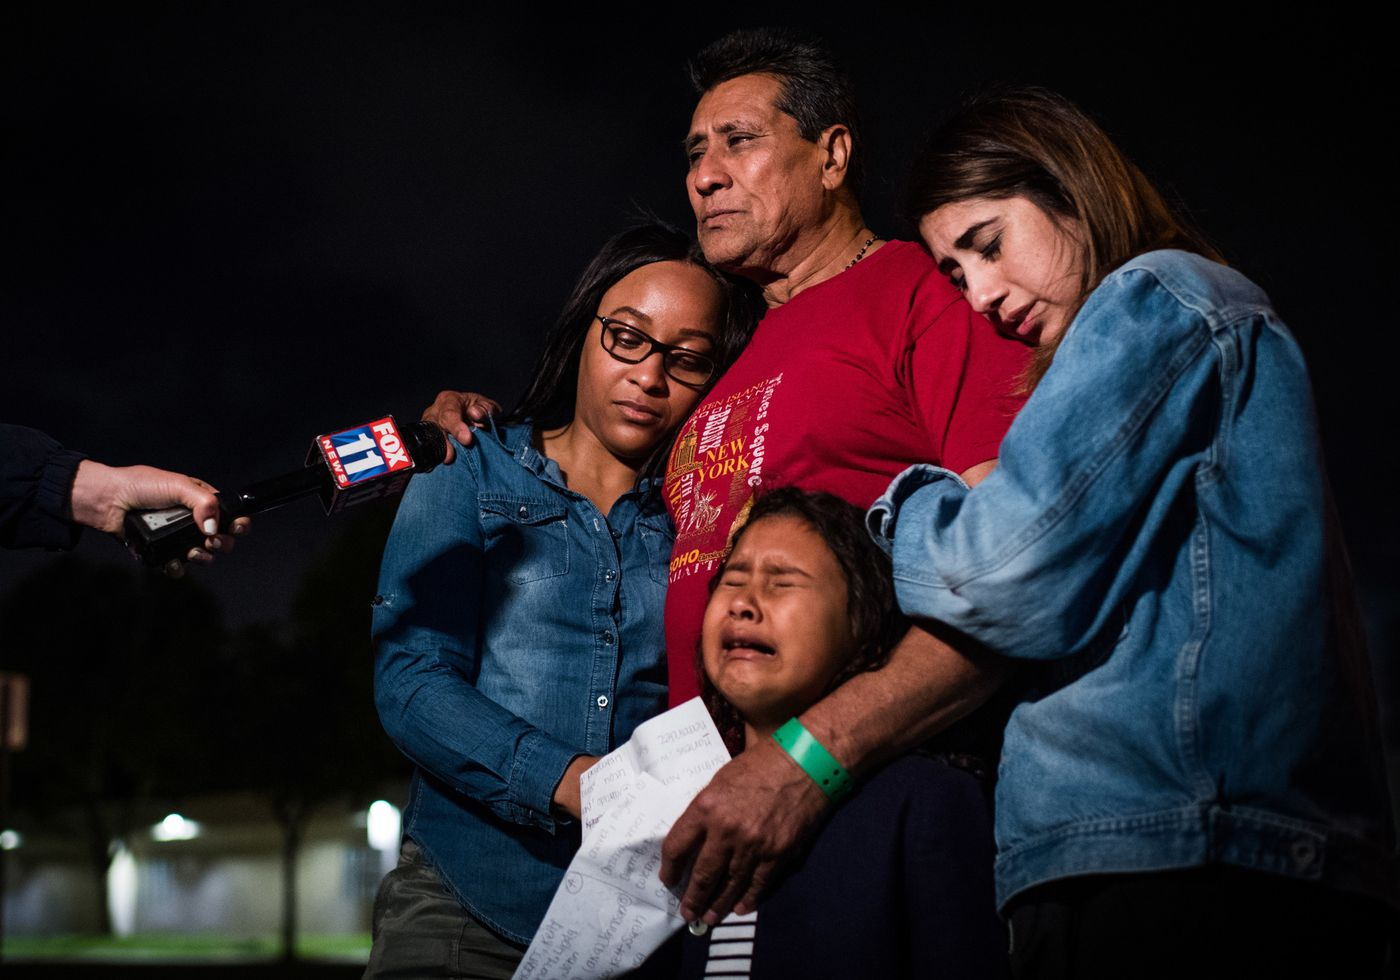 Lawful permanent resident freed nearly three weeks after arrest